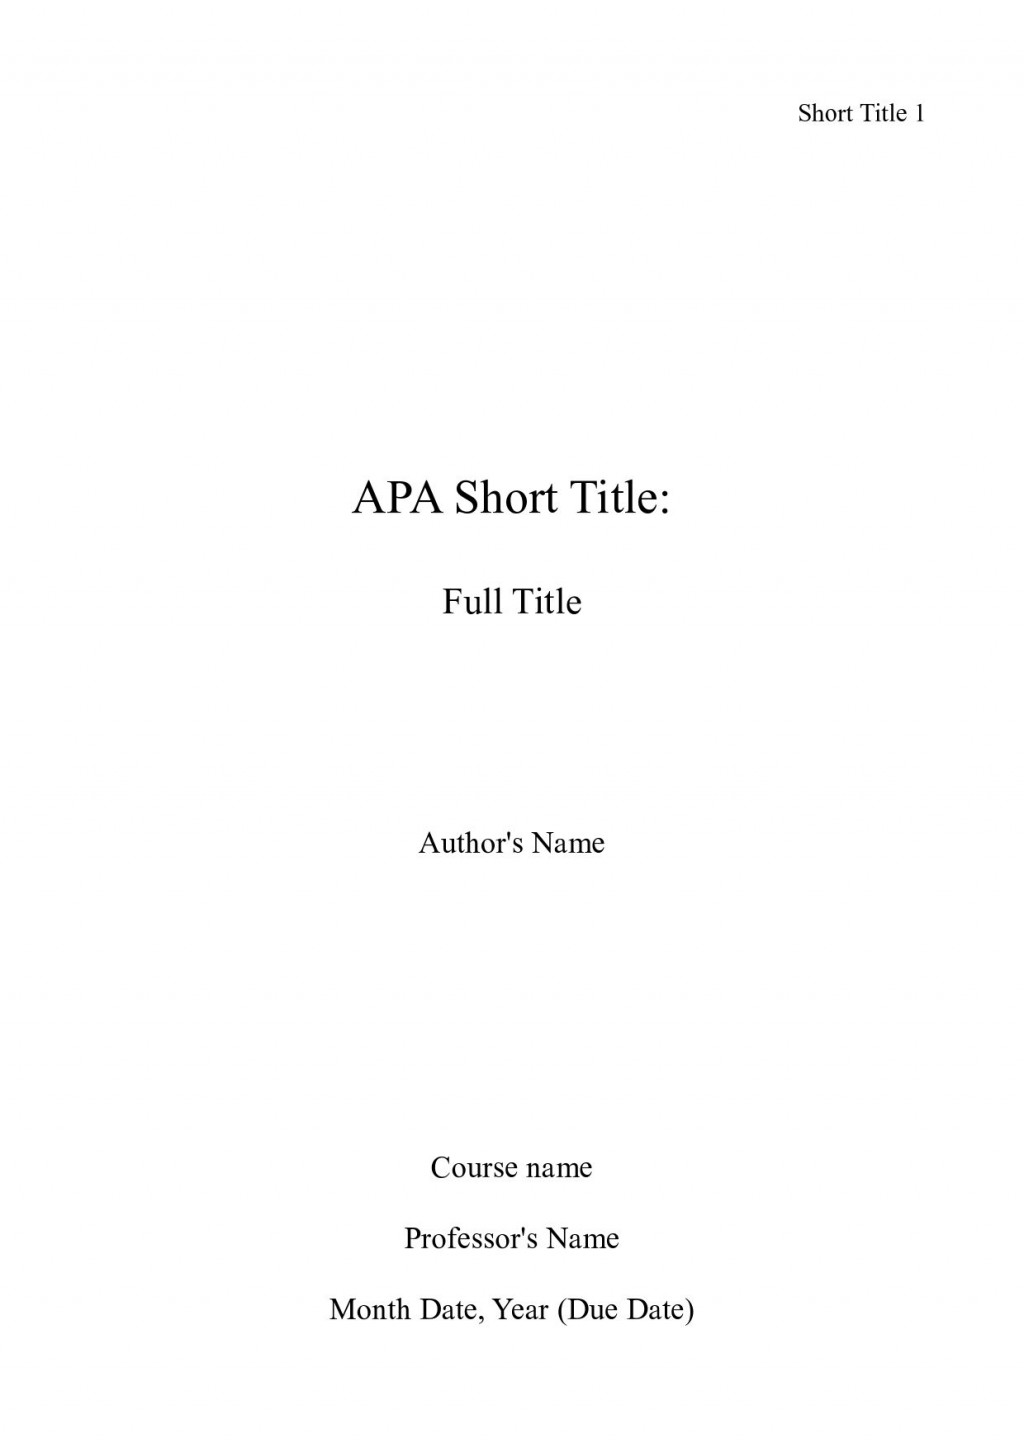 005 Research Paper Cover Page Template For Striking A Title Example Layout Format Large